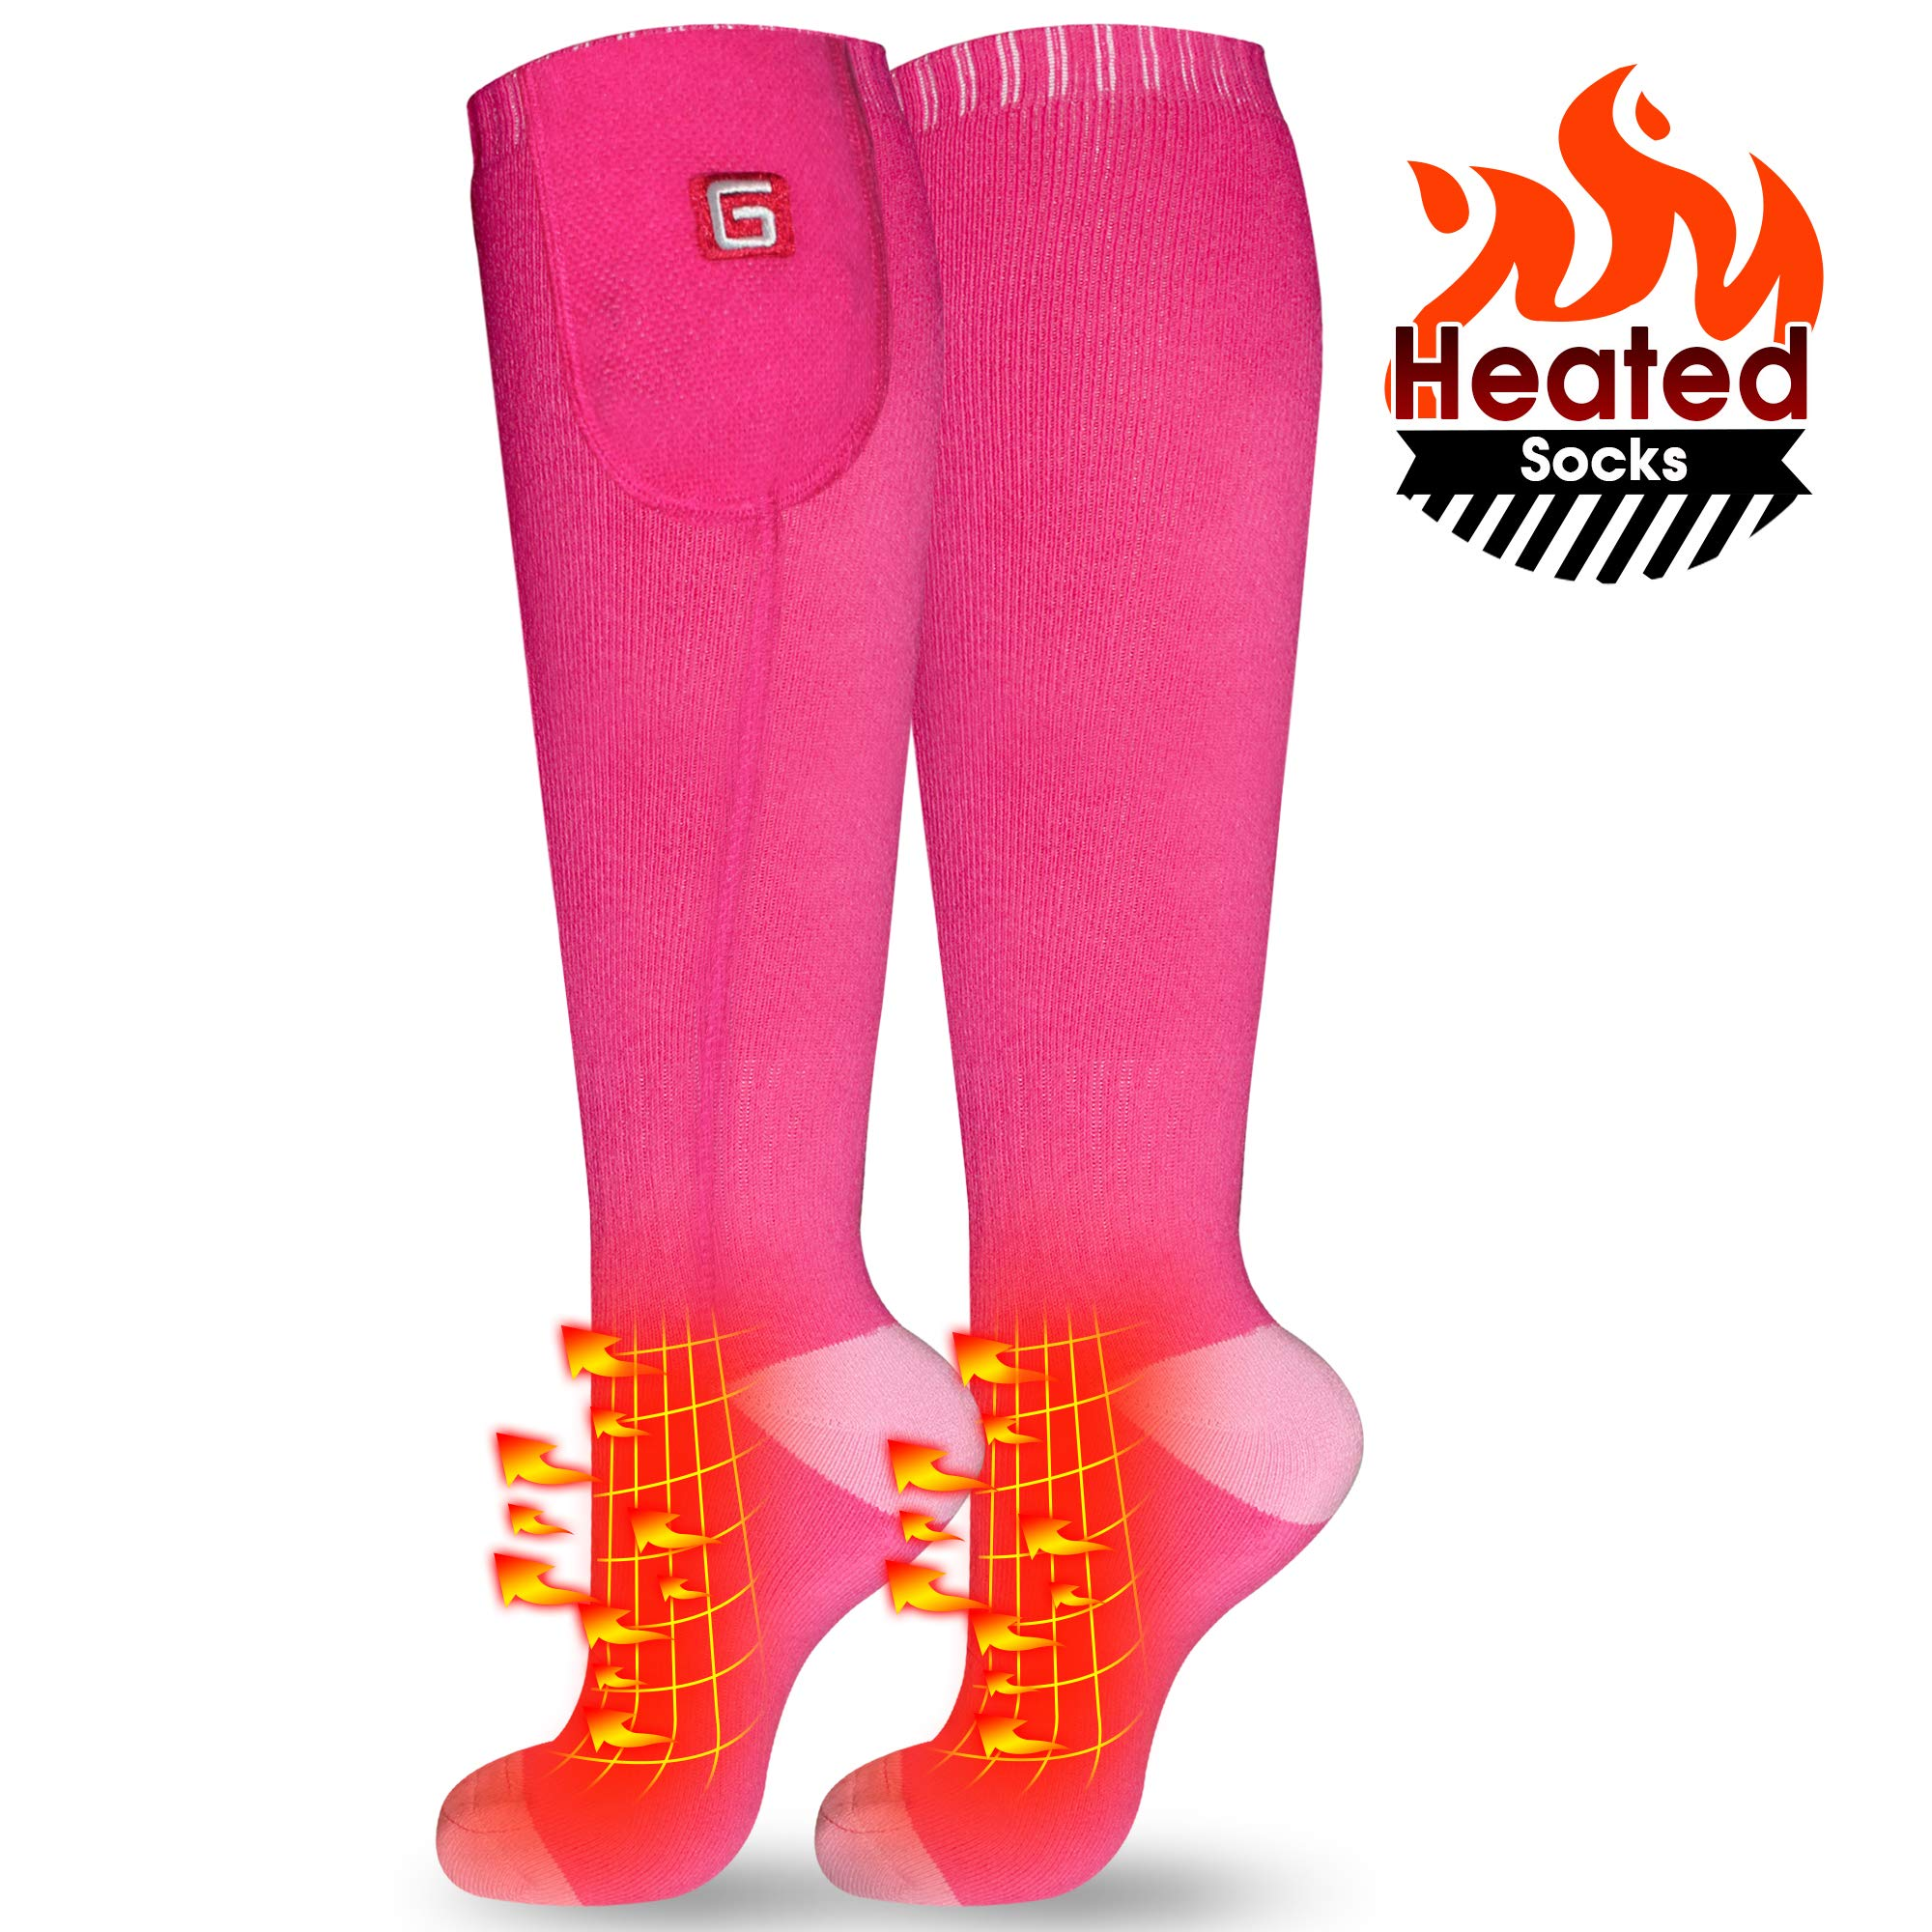 IFWATER Electric Heated Socks for Women Men, Rechargeable Electric Socks Battery Heated Socks Foot Warmer for Chronically Cold Foot, Great for Skiing Hiking Motorcycling Warm Winter Socks(Pink-M) by IFWATER